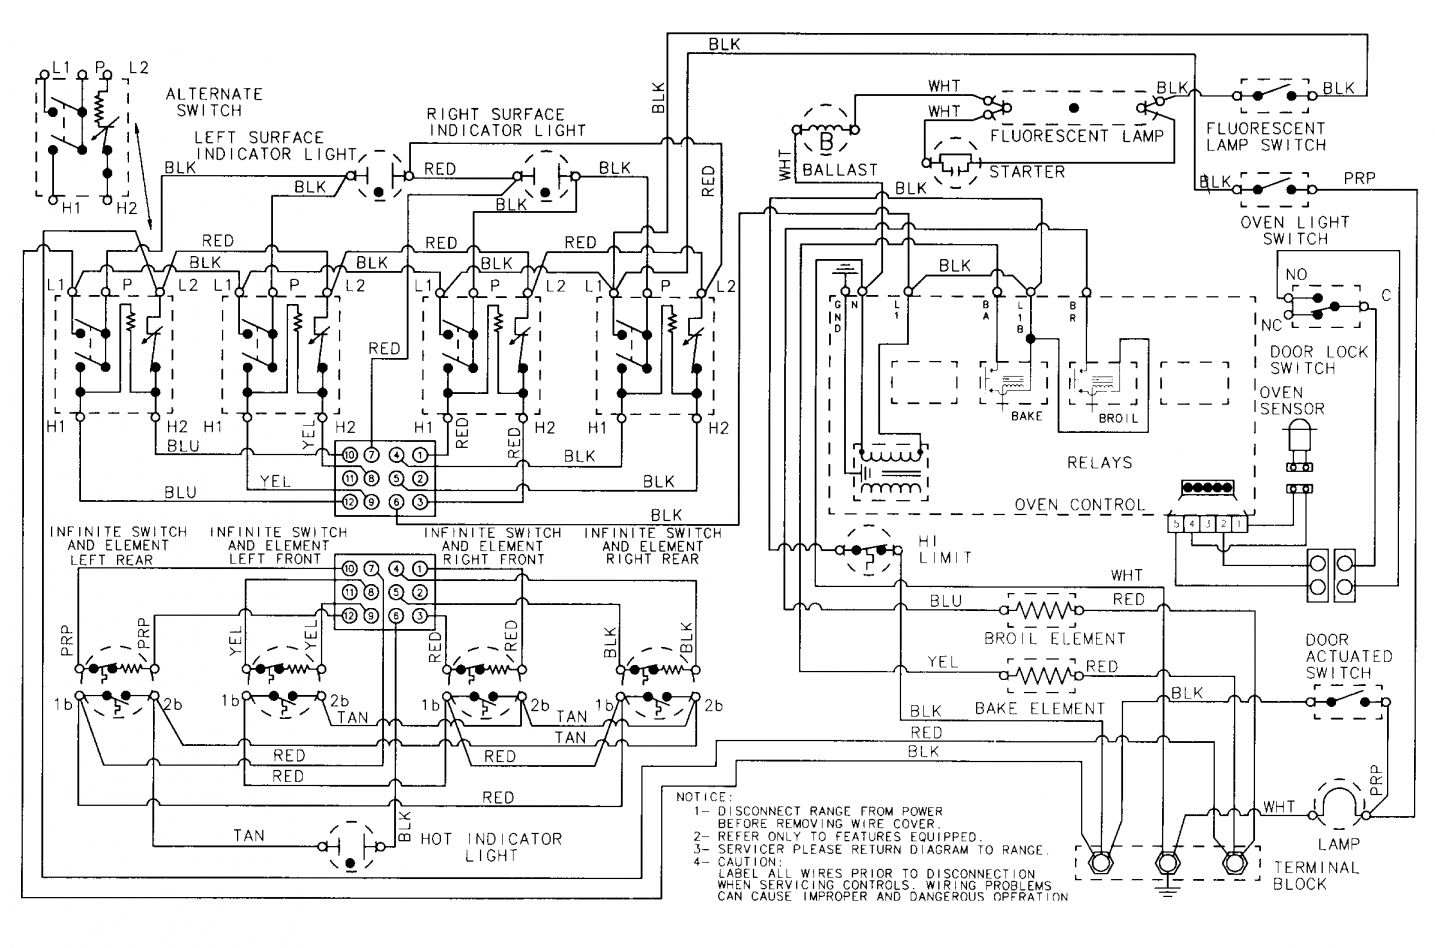 15+ Dishwasher Electrical Wiring Diagram - Wiring Diagram - Wiringg.net |  Bosch dishwashers, Bosch, Maytag washersPinterest